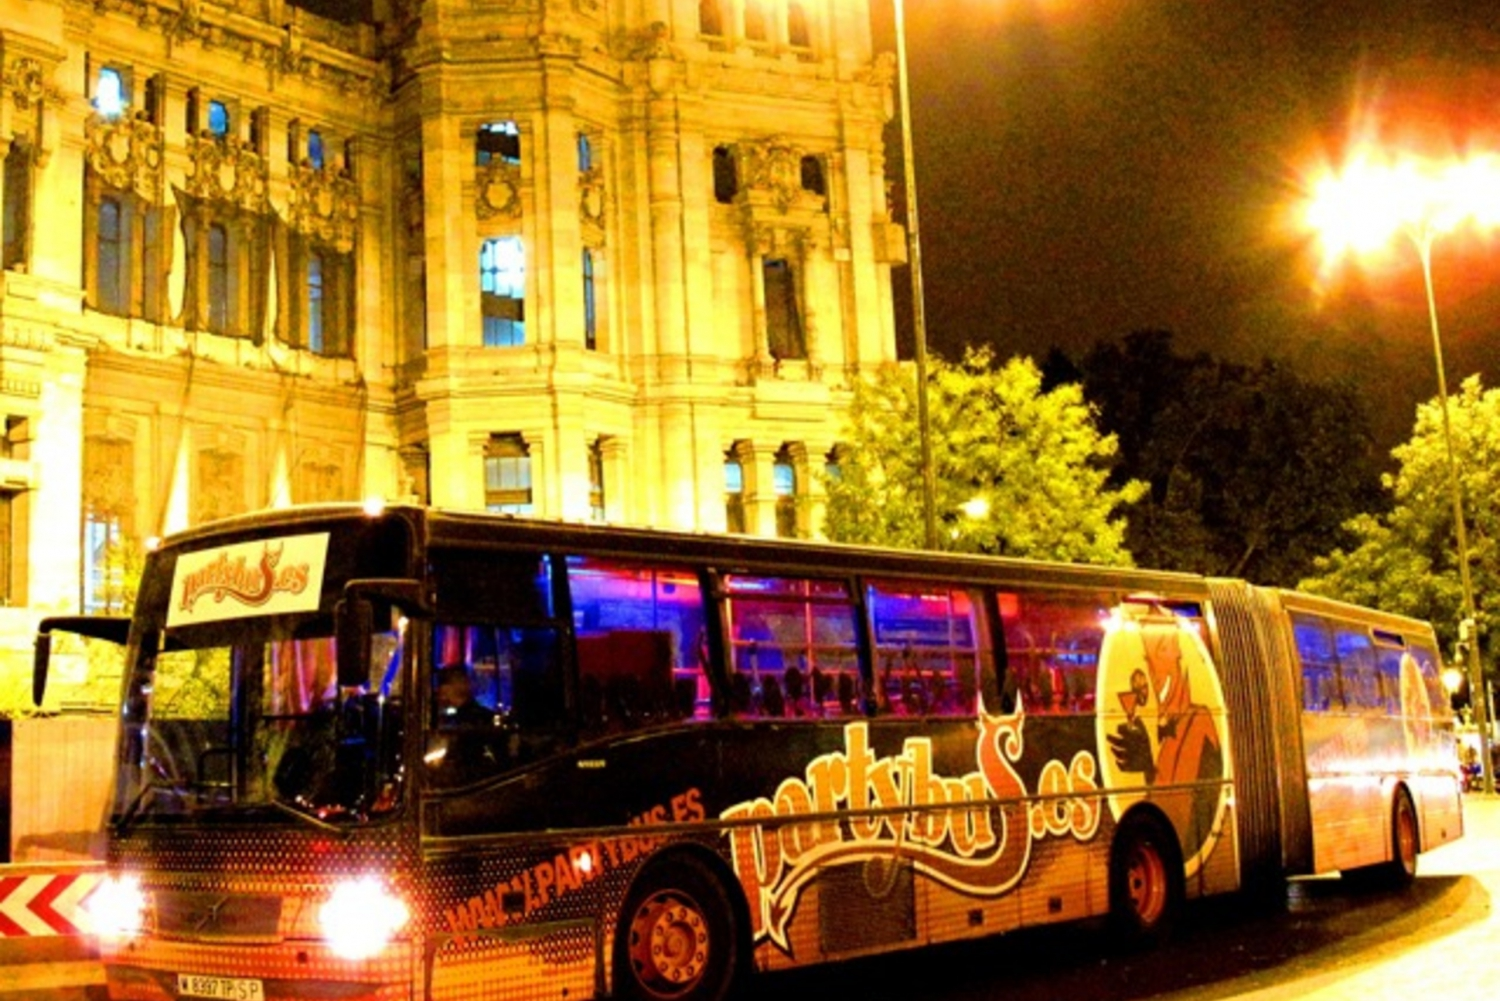 7-Hour Party Bus Bachelorette Party in Madrid